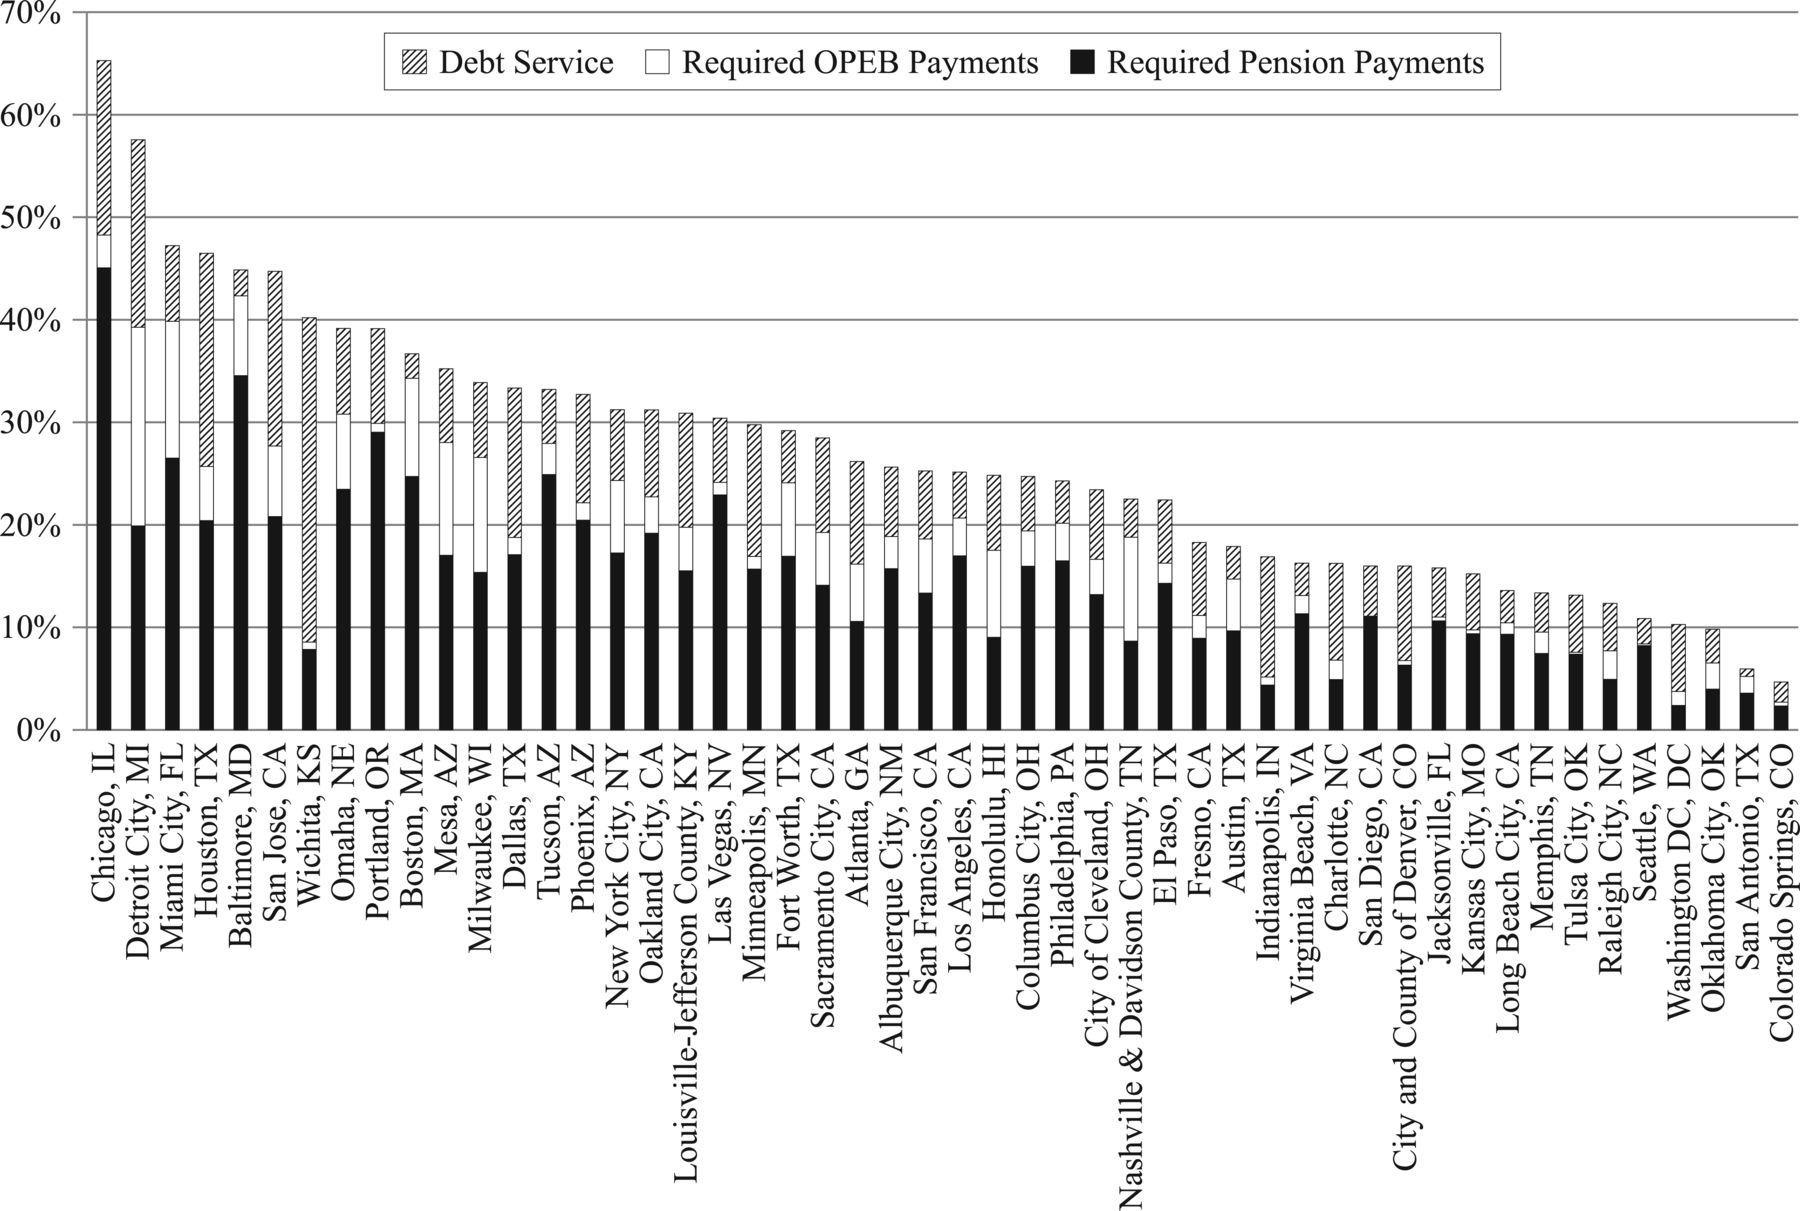 An Overview of the State and Local Government Pension/OPEB